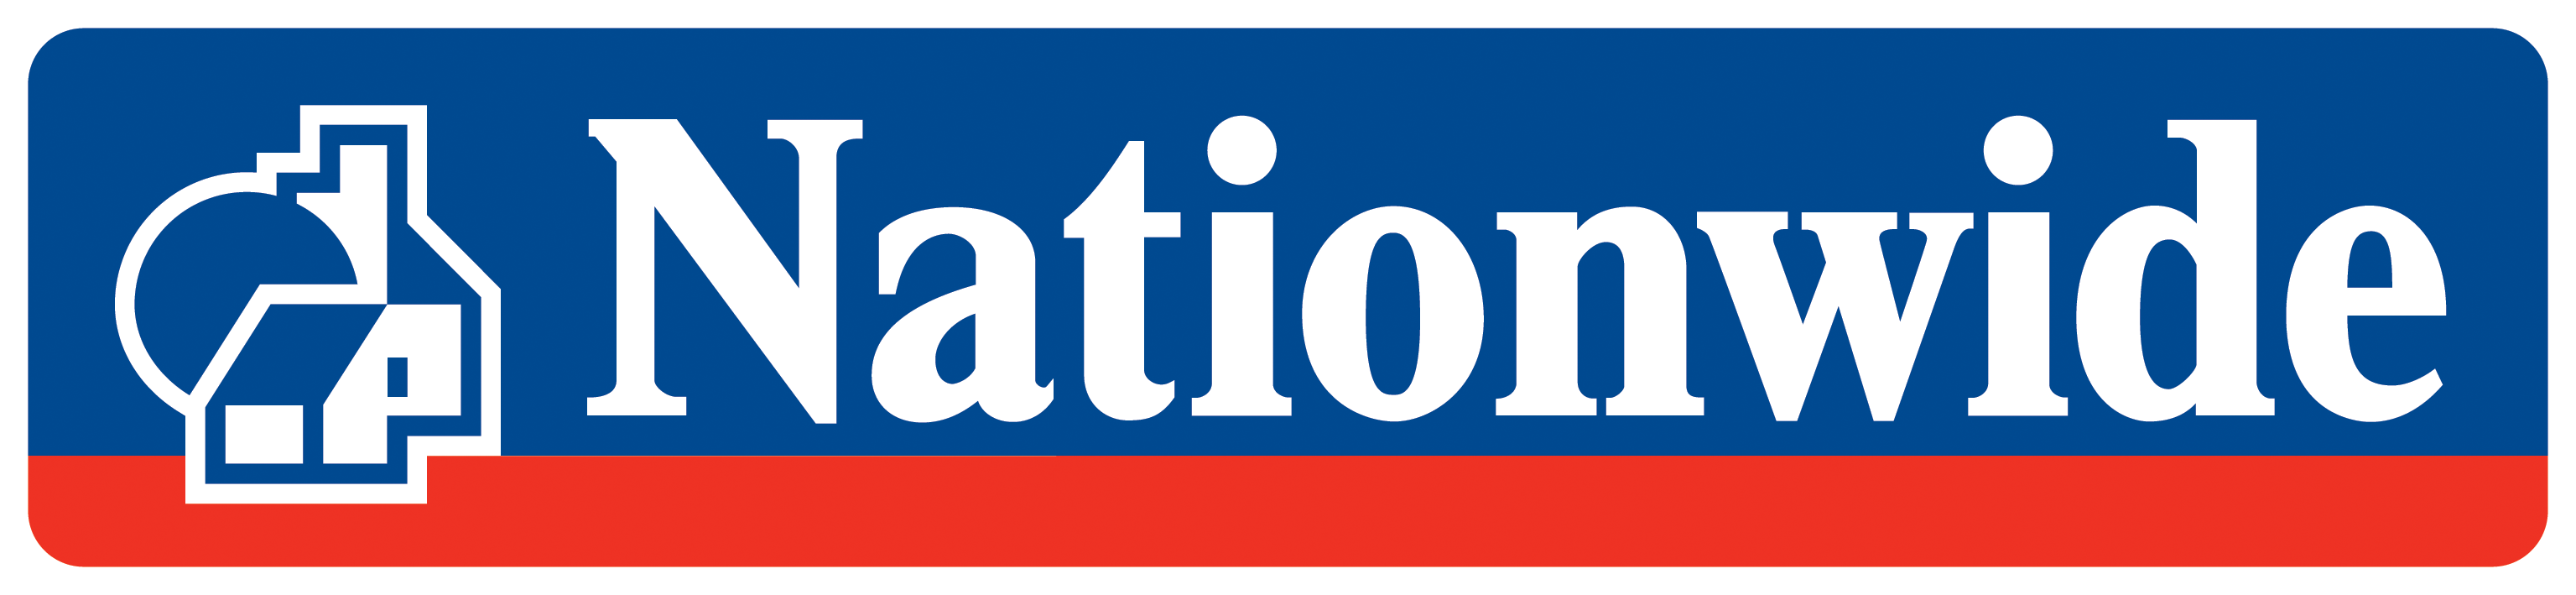 Nationwide Bank Loans logo